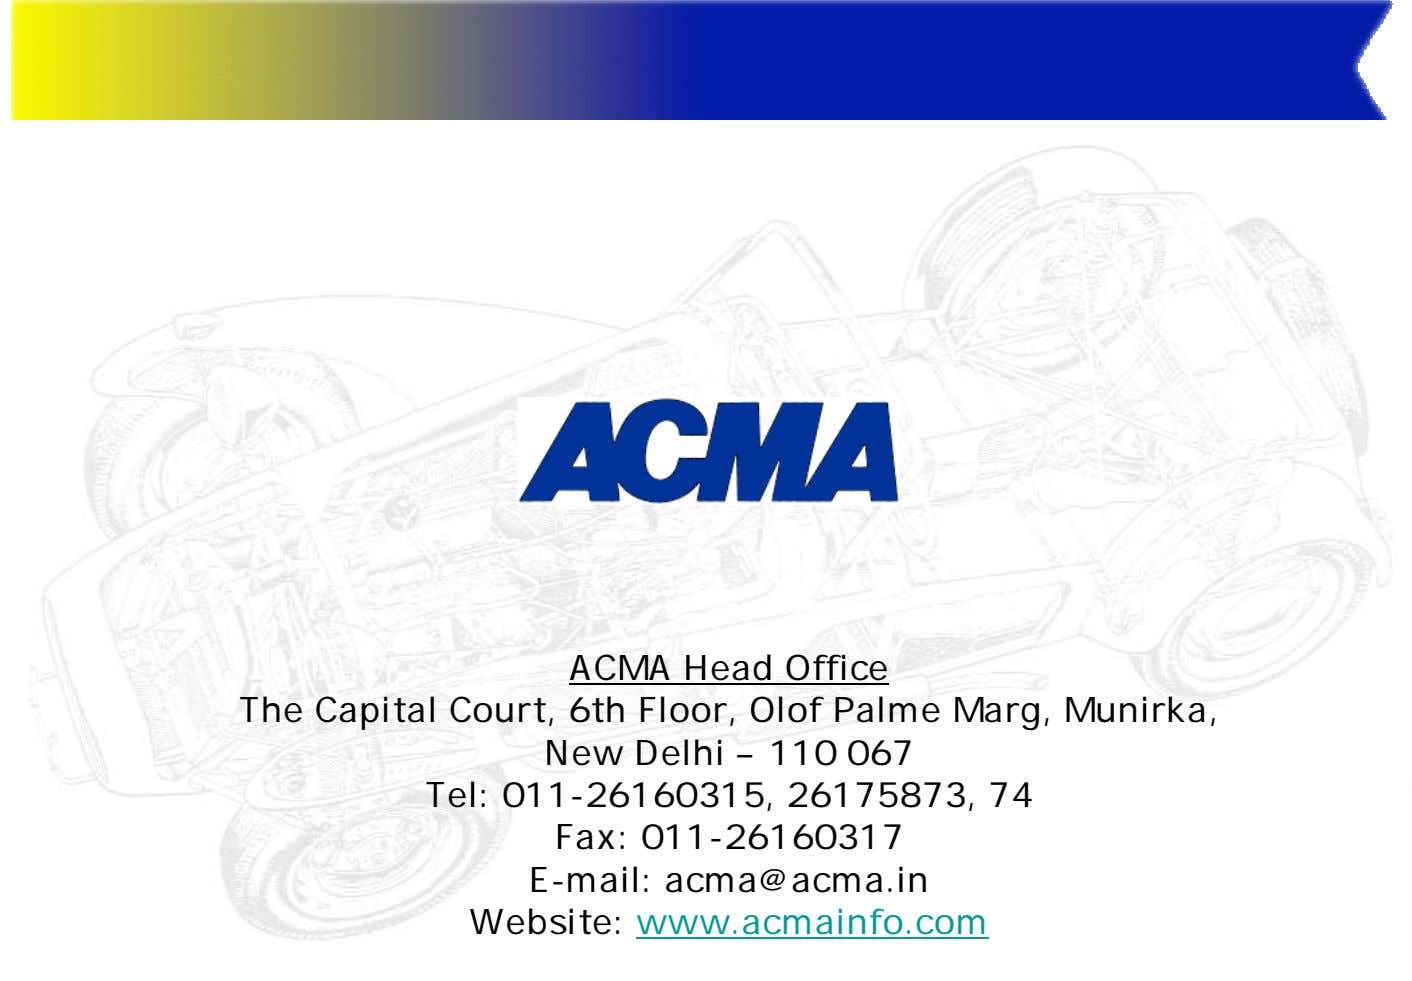 ACMA Head Office The Capital Court, 6th Floor, Olof Palme Marg, Munirka, New Delhi –